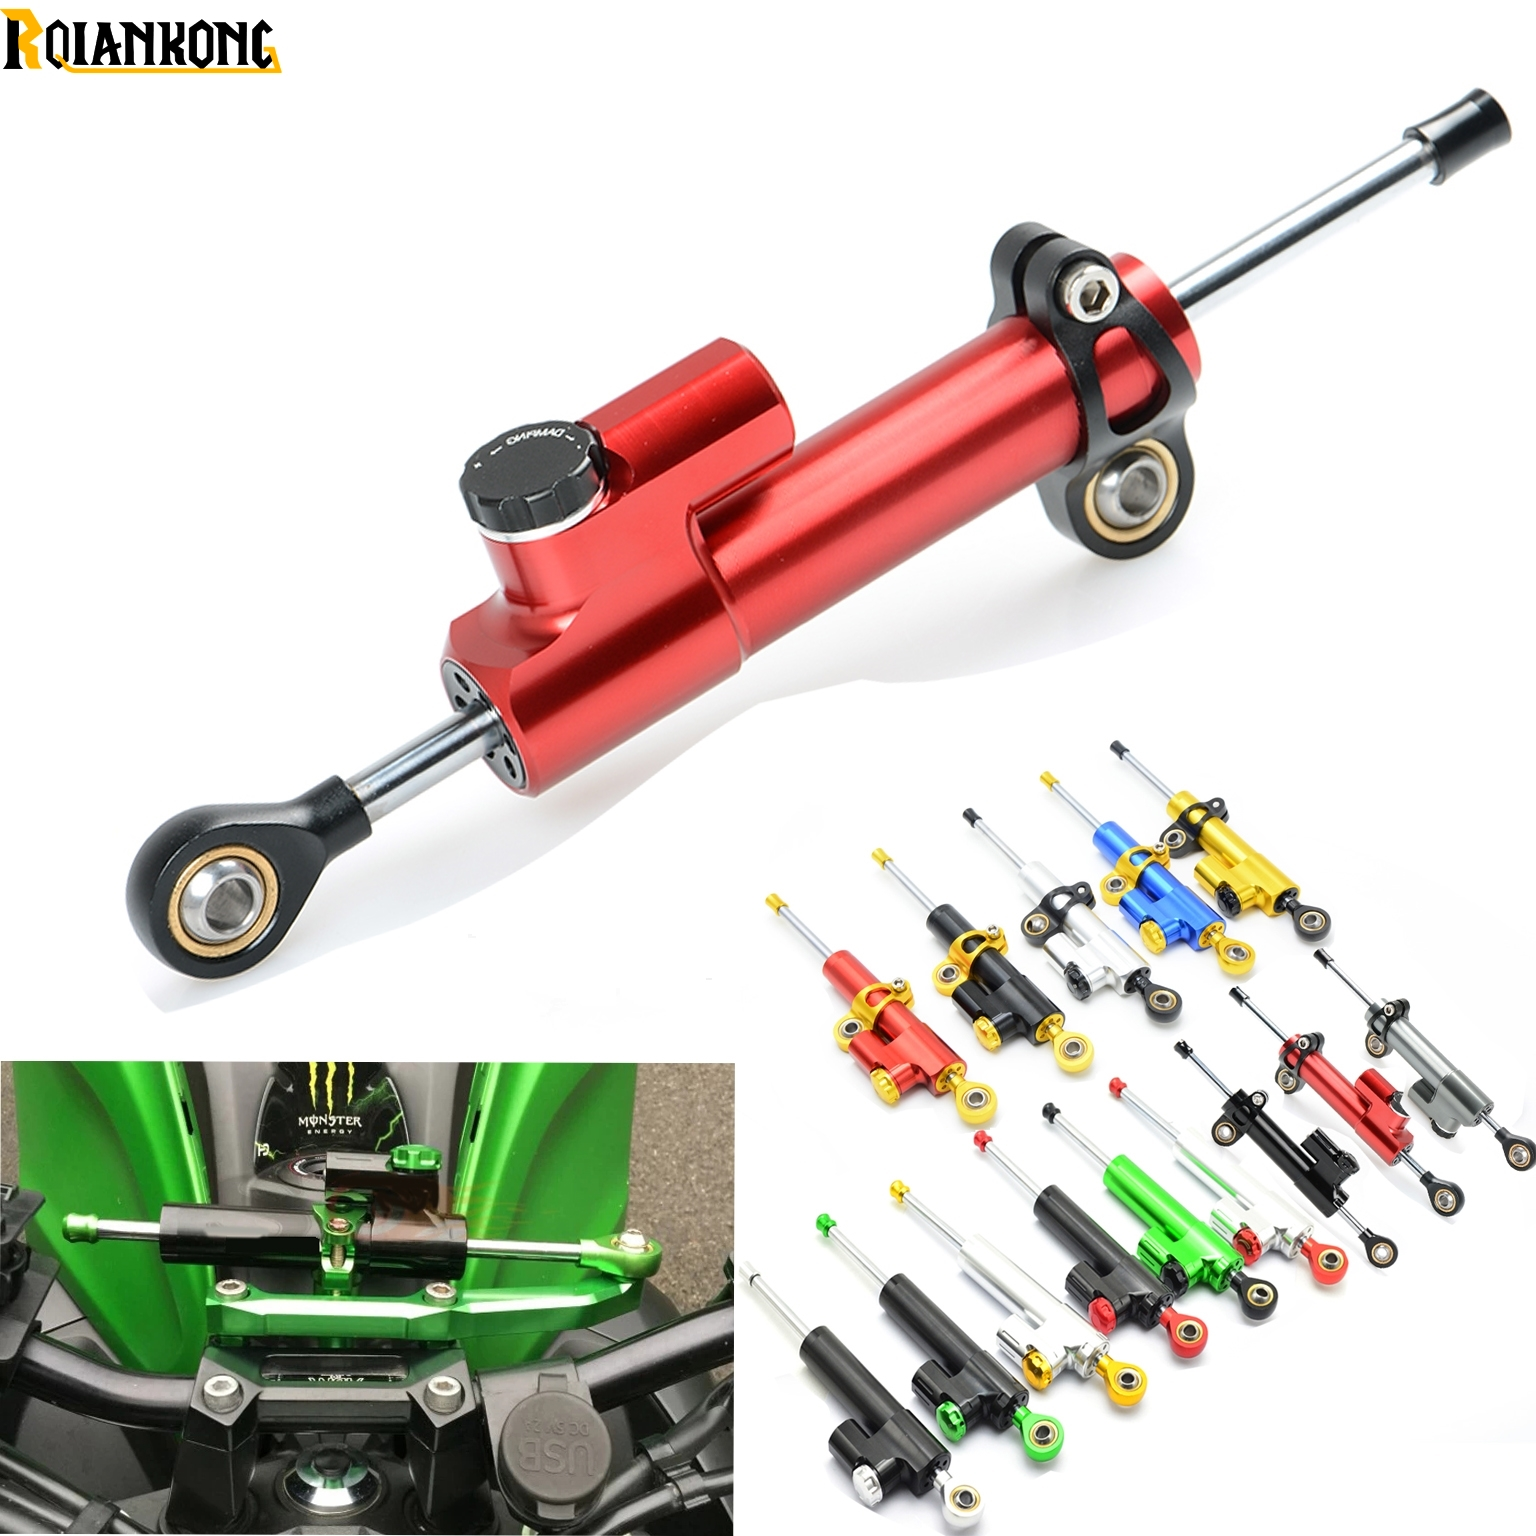 CNC Aluminum Motorcycle Steering Damper Stabilizer Linear Safe Control for TRIUMPH 675 STREET TRIPLE R RX AMERICA LT<br>